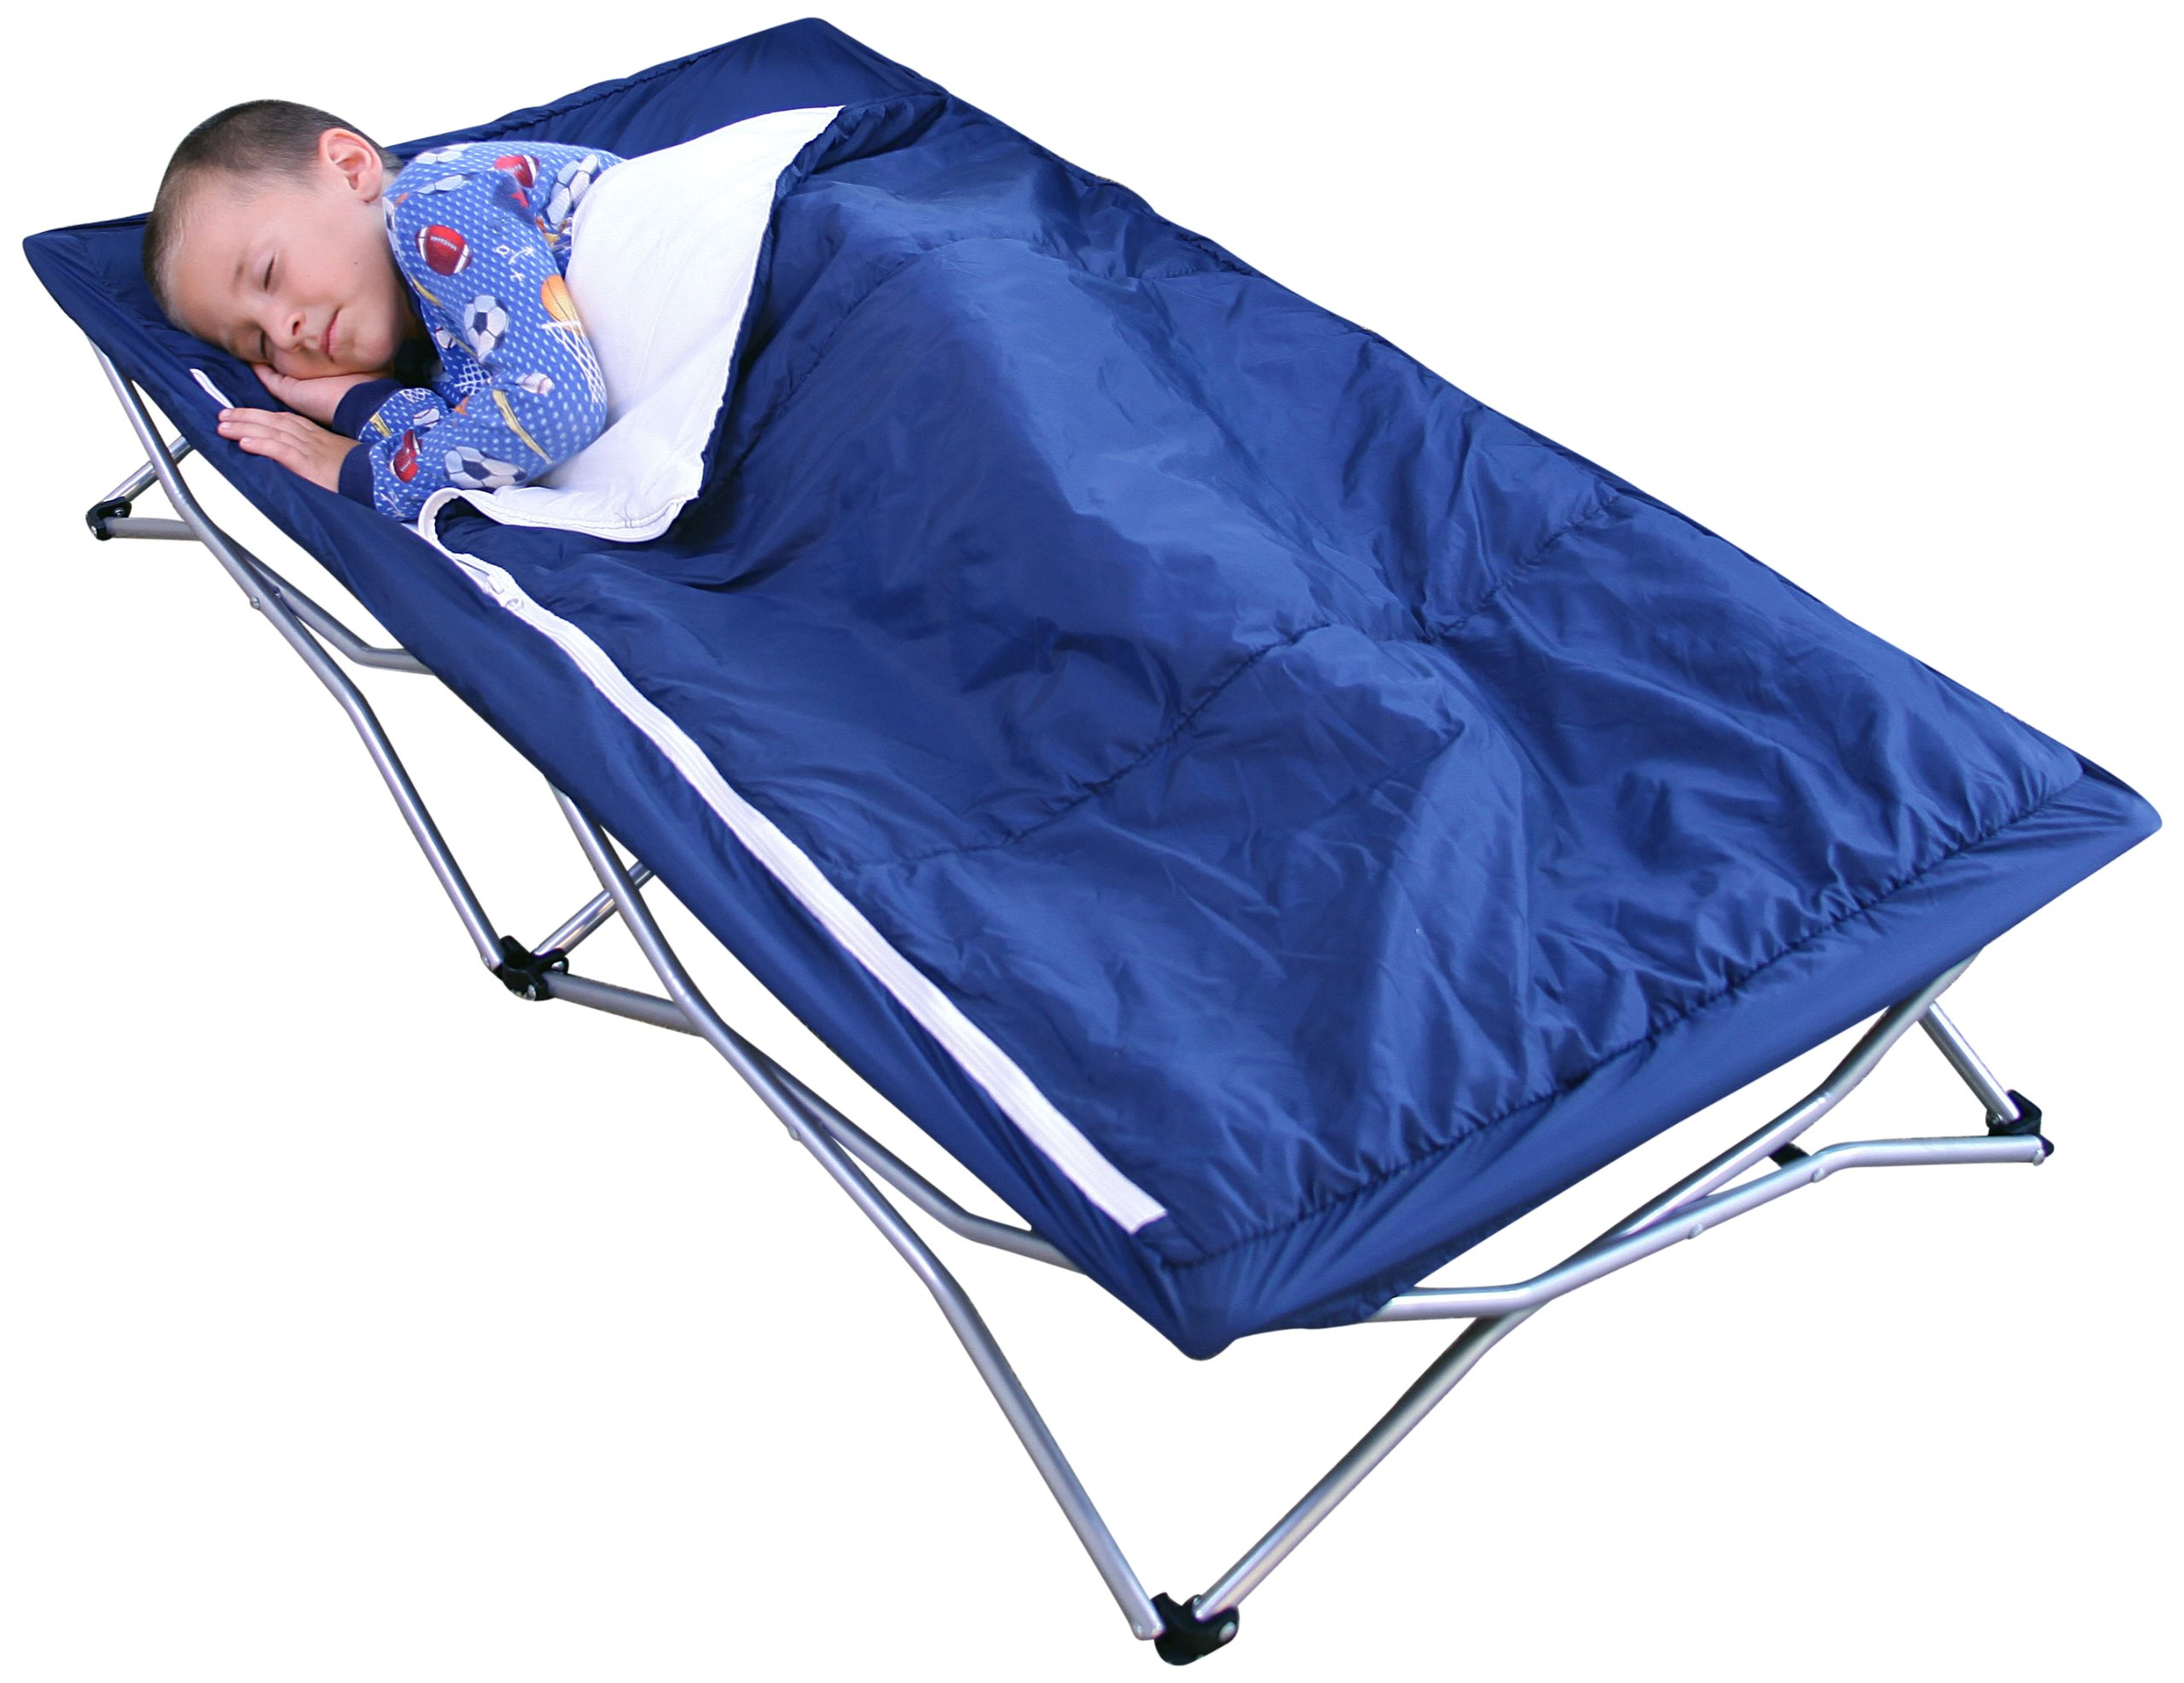 Regalo My Cot Deluxe, with Sleeping Bag, Navy Regalo Portable fold and go system Removable sleeping bag and pillow Includes Carry Case 2